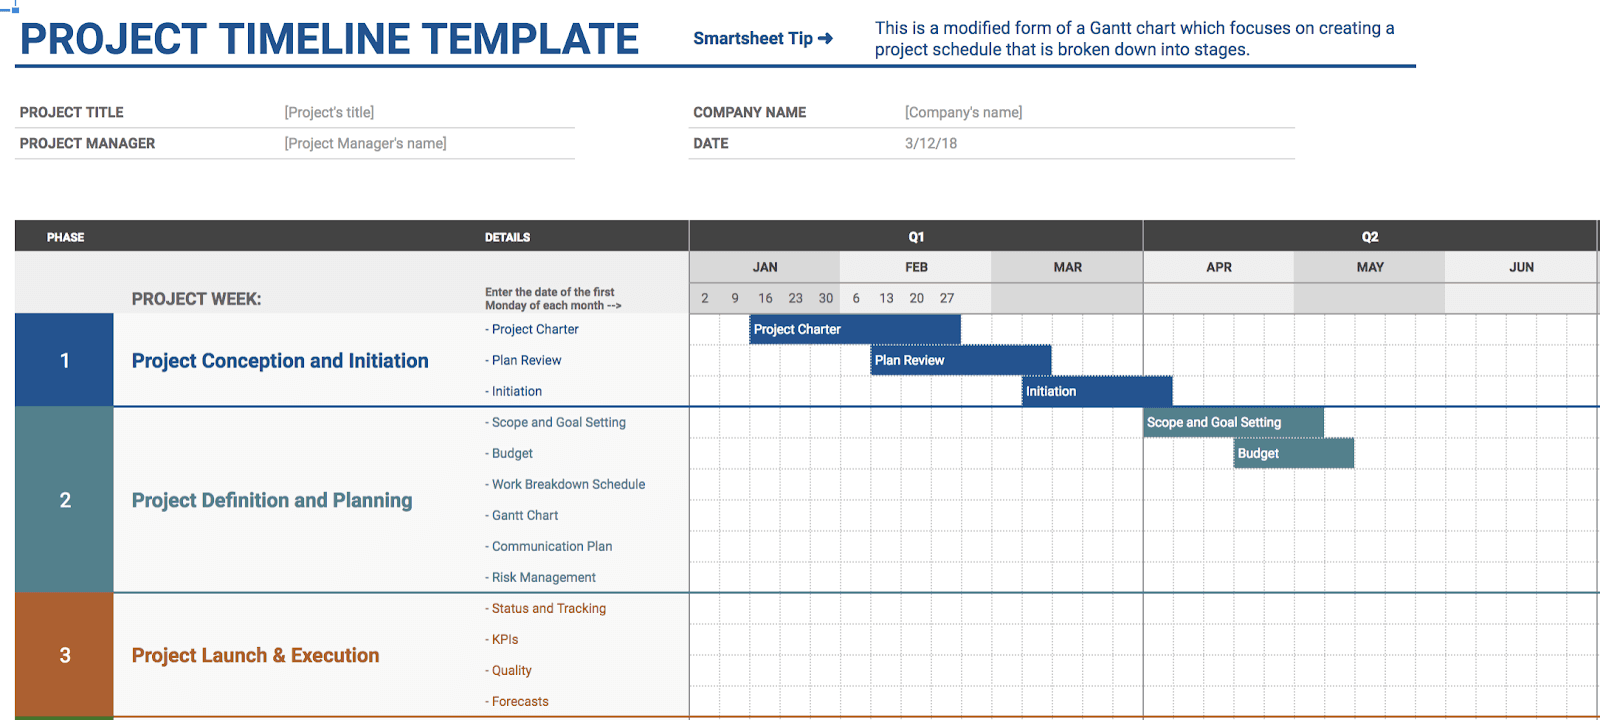 Screenshot of the Project Timeline Template for Google Sheets.